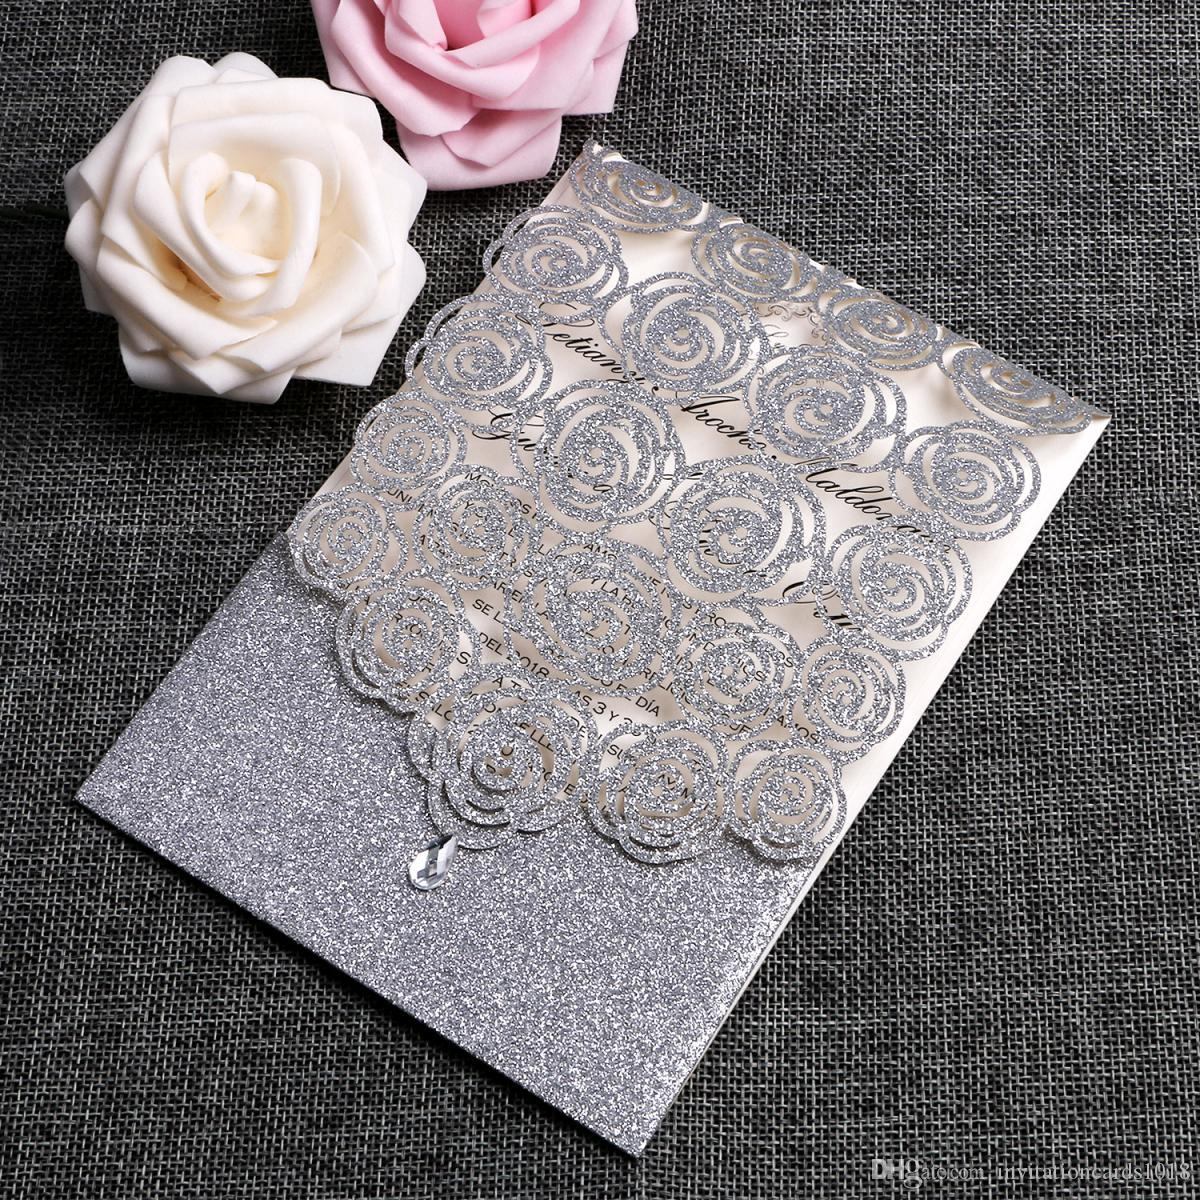 New Silver Glitter Laser Cut Wedding Invitations Cards Hollow Flora Cardstock For Bridal Shower Engagement Birthday Invites Card